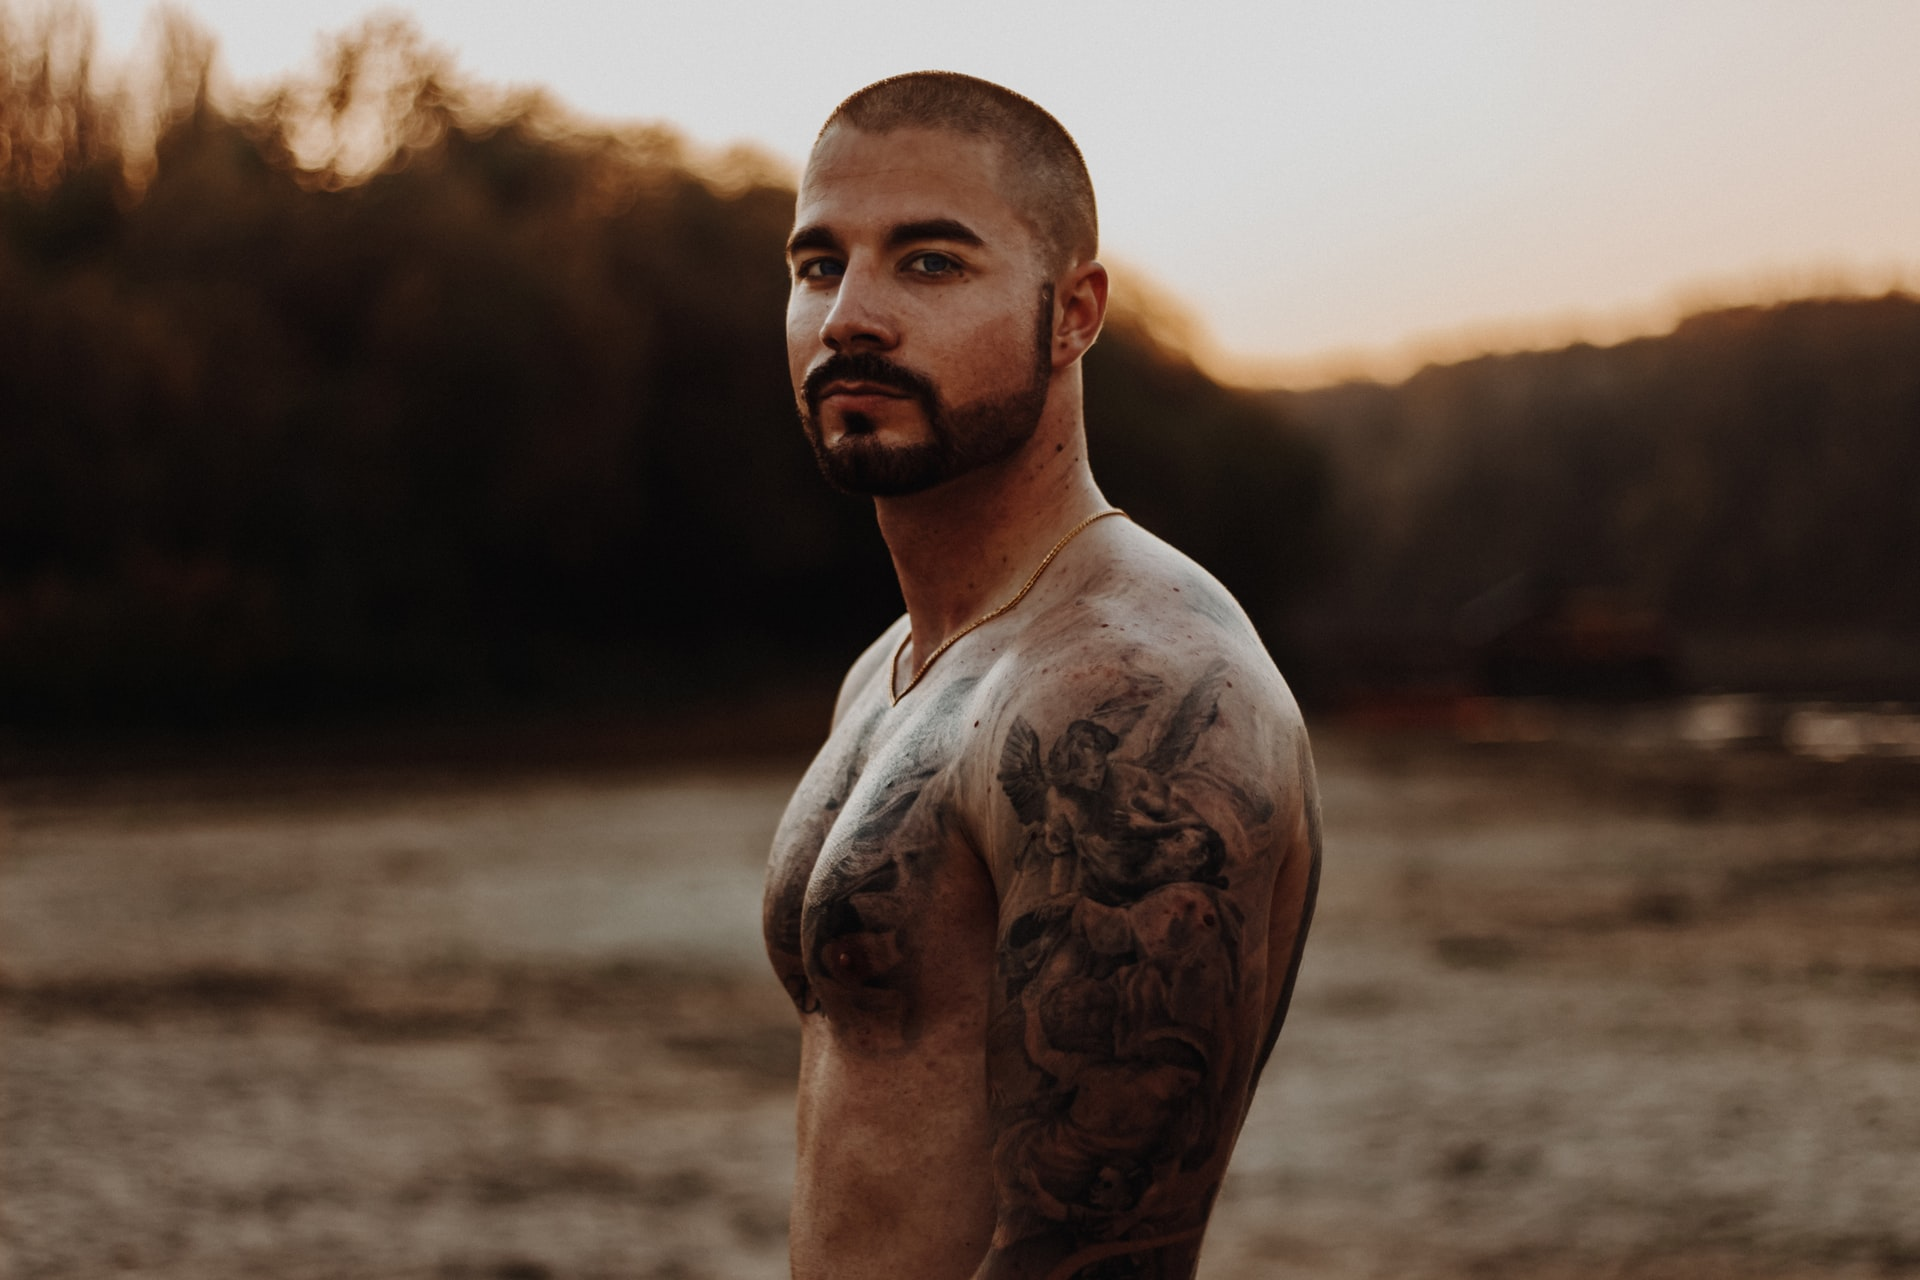 topless man with defined pectoral muscles looks at camera